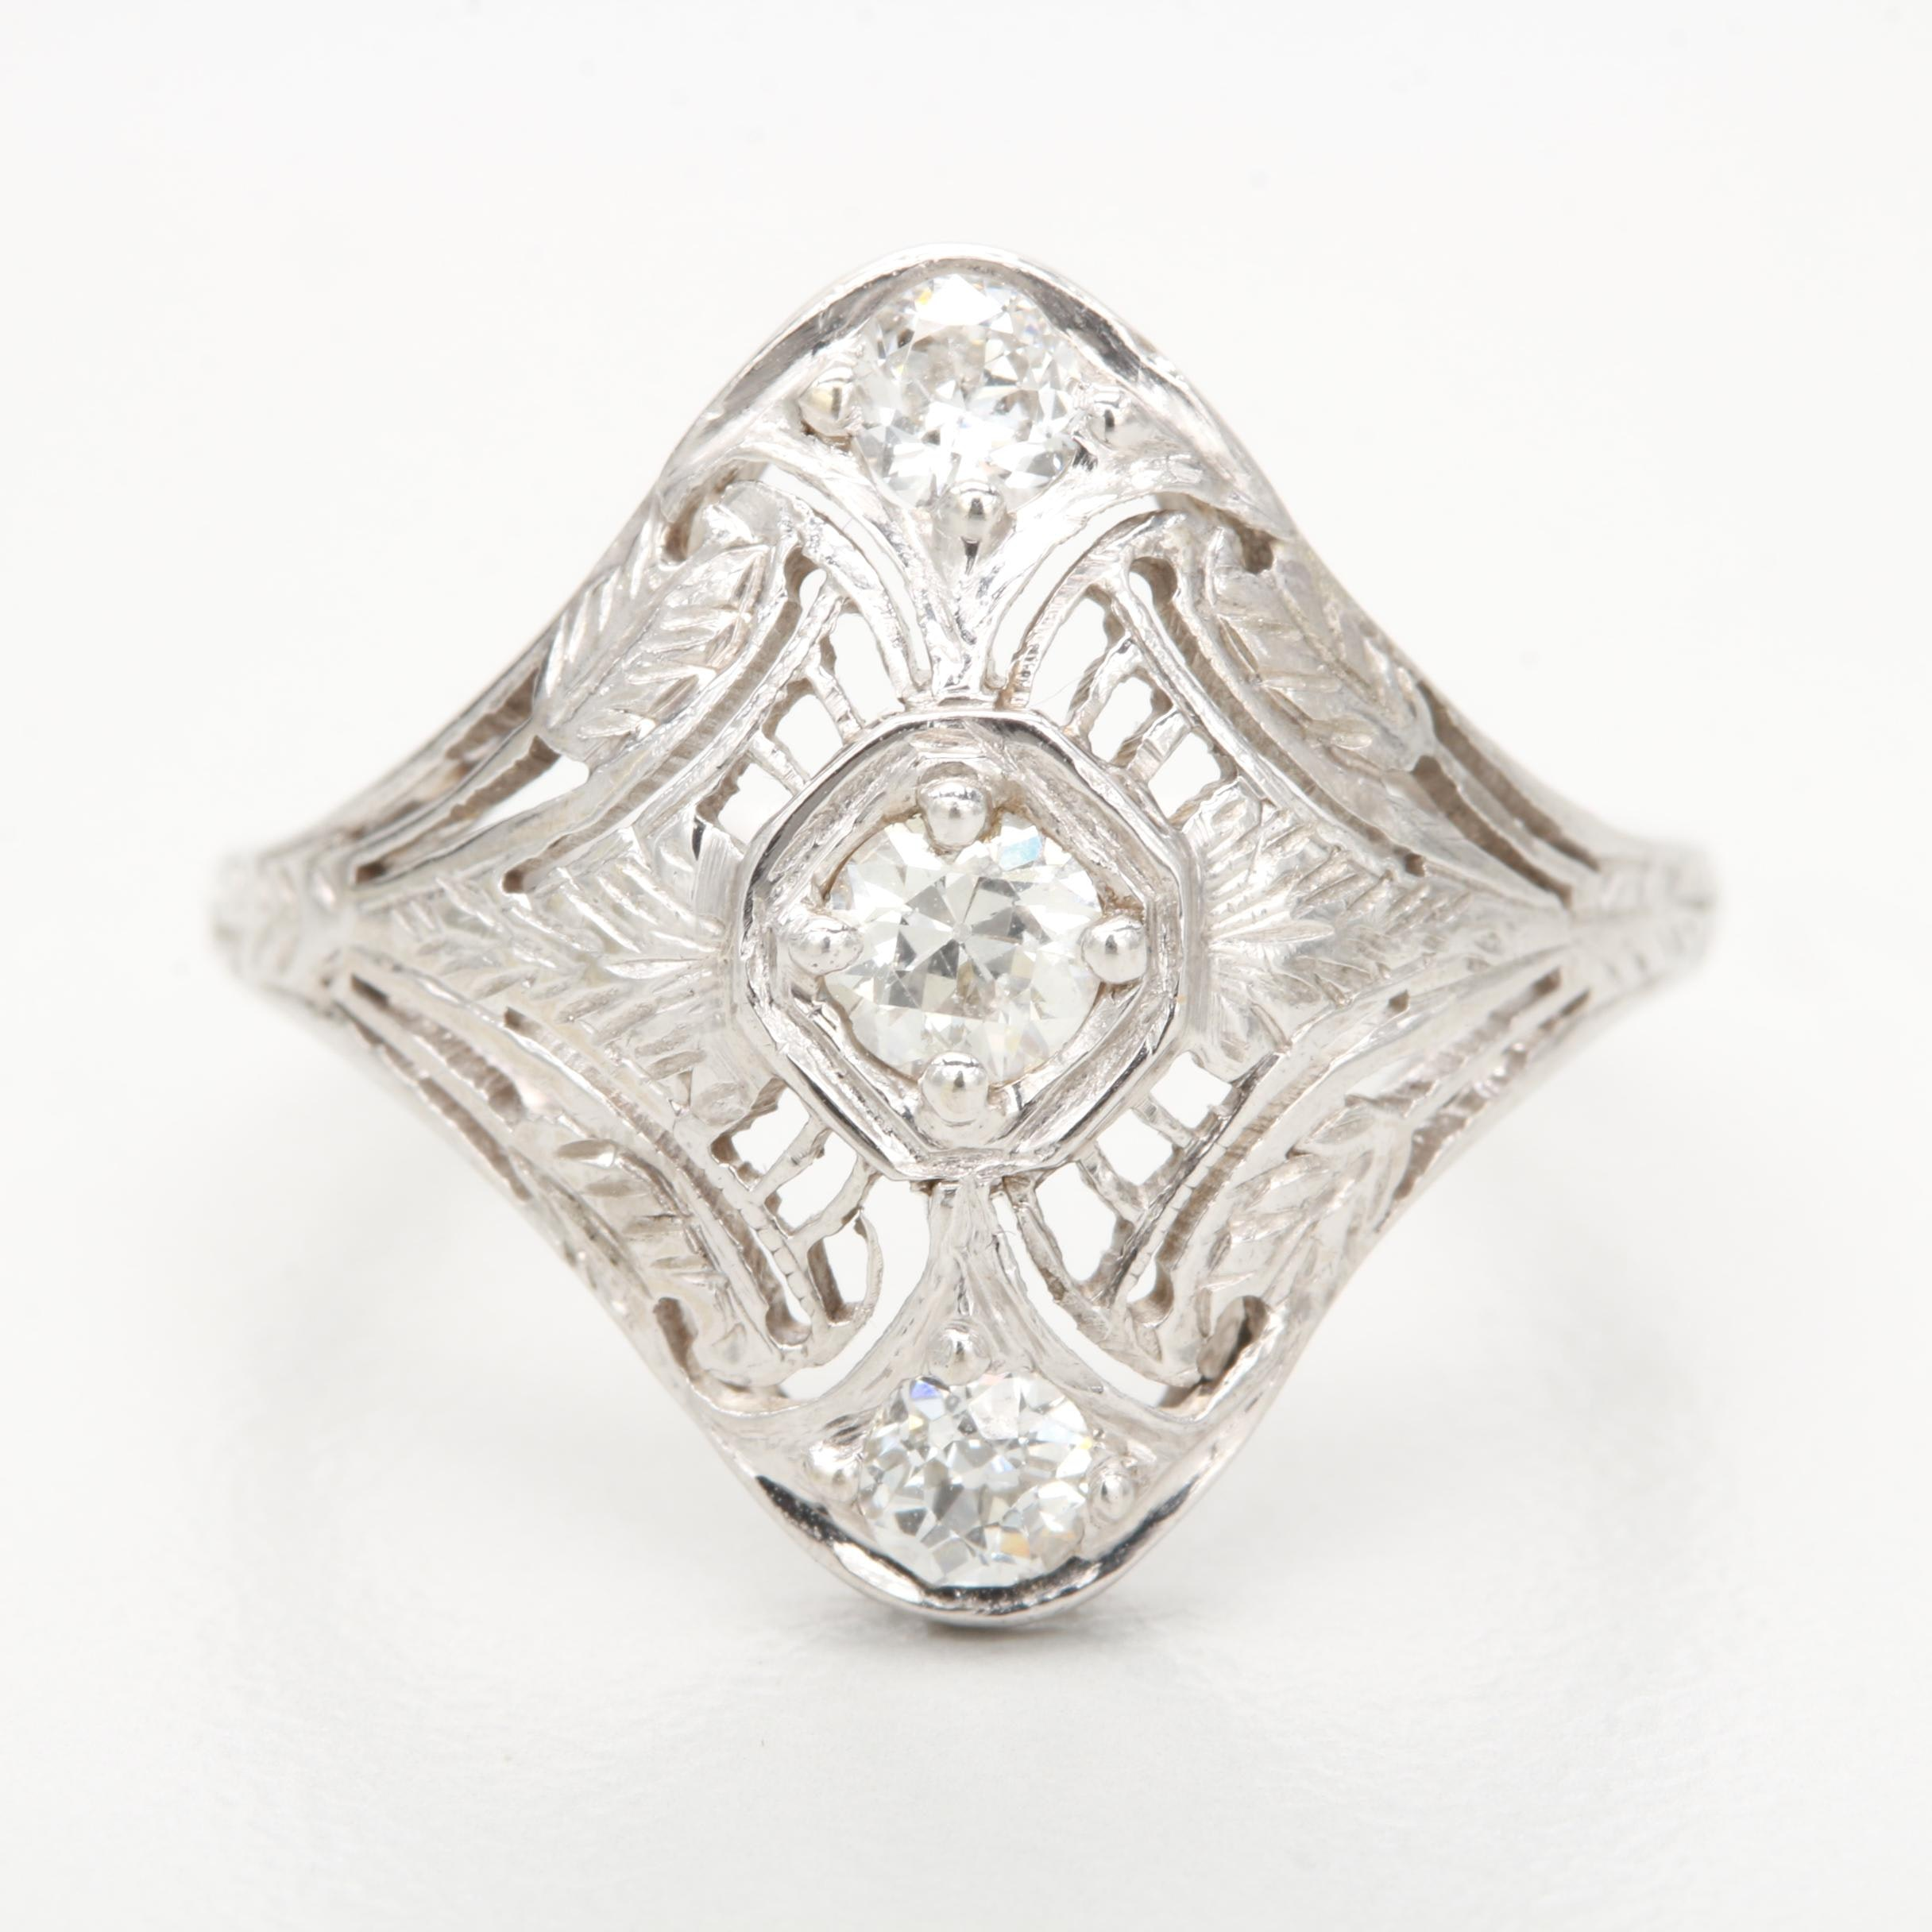 Edwardian 14K White Gold Old European Cut Diamond Ring